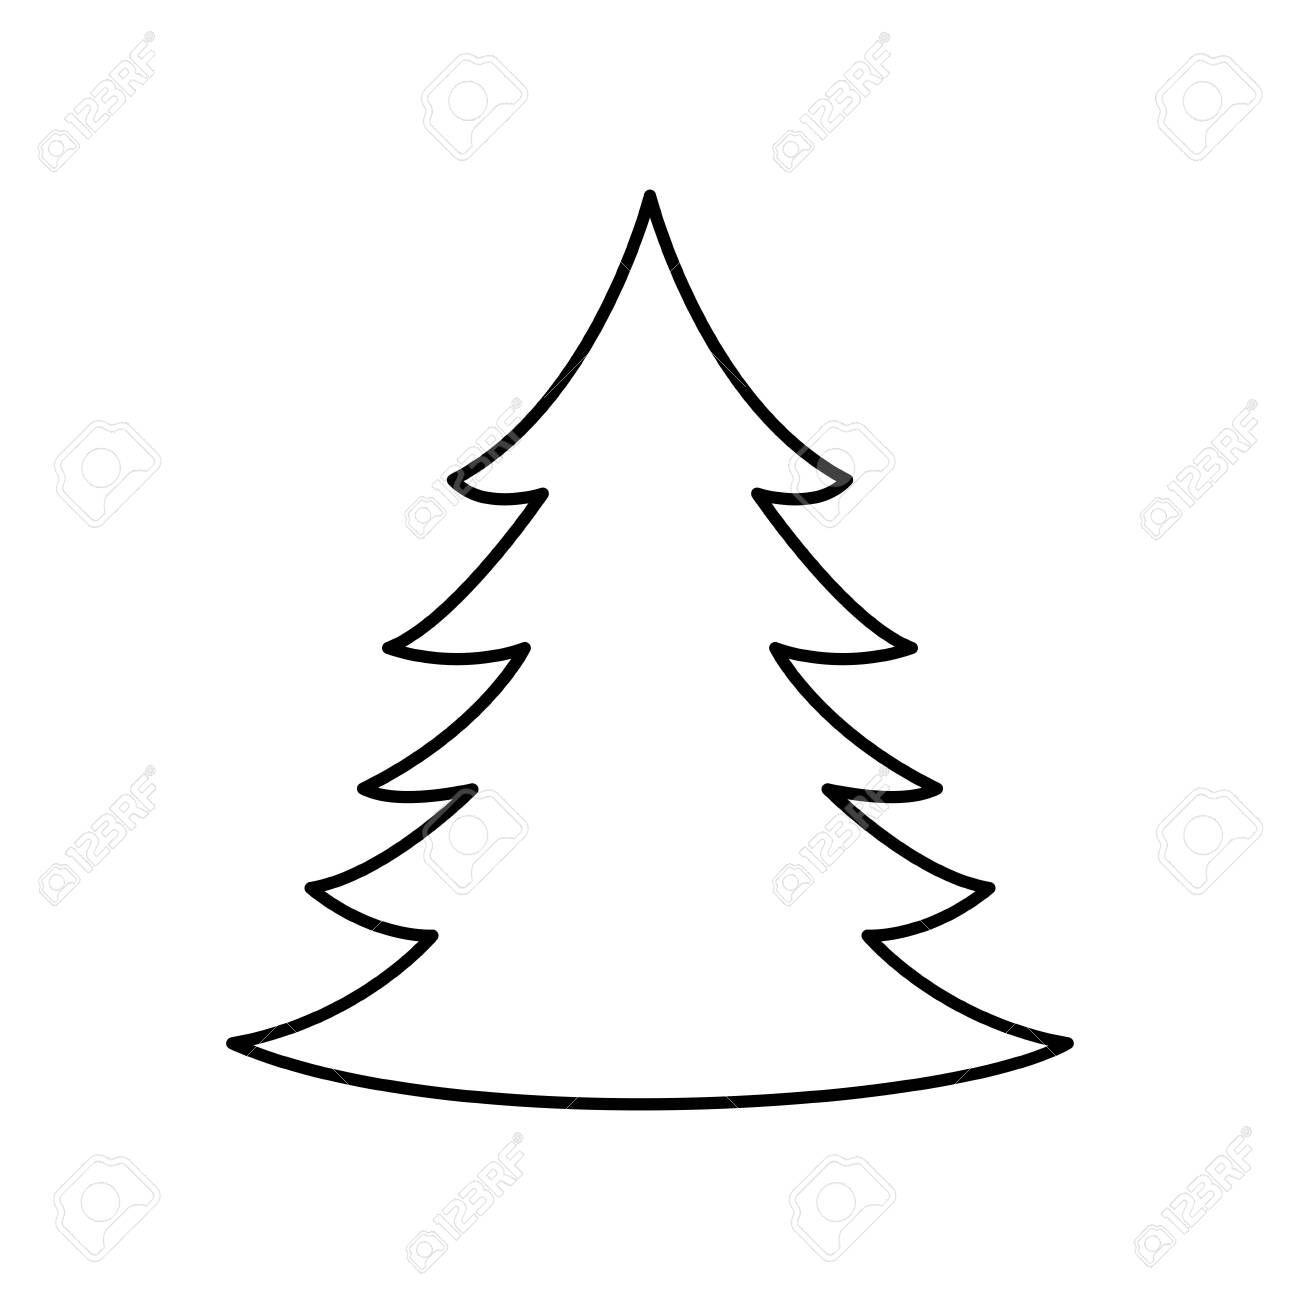 Pine Tree Christmas Line Style Icon Vector Illustration Design Illustration Sponso Presentation Design Layout Vector Illustration Design Illustration Design